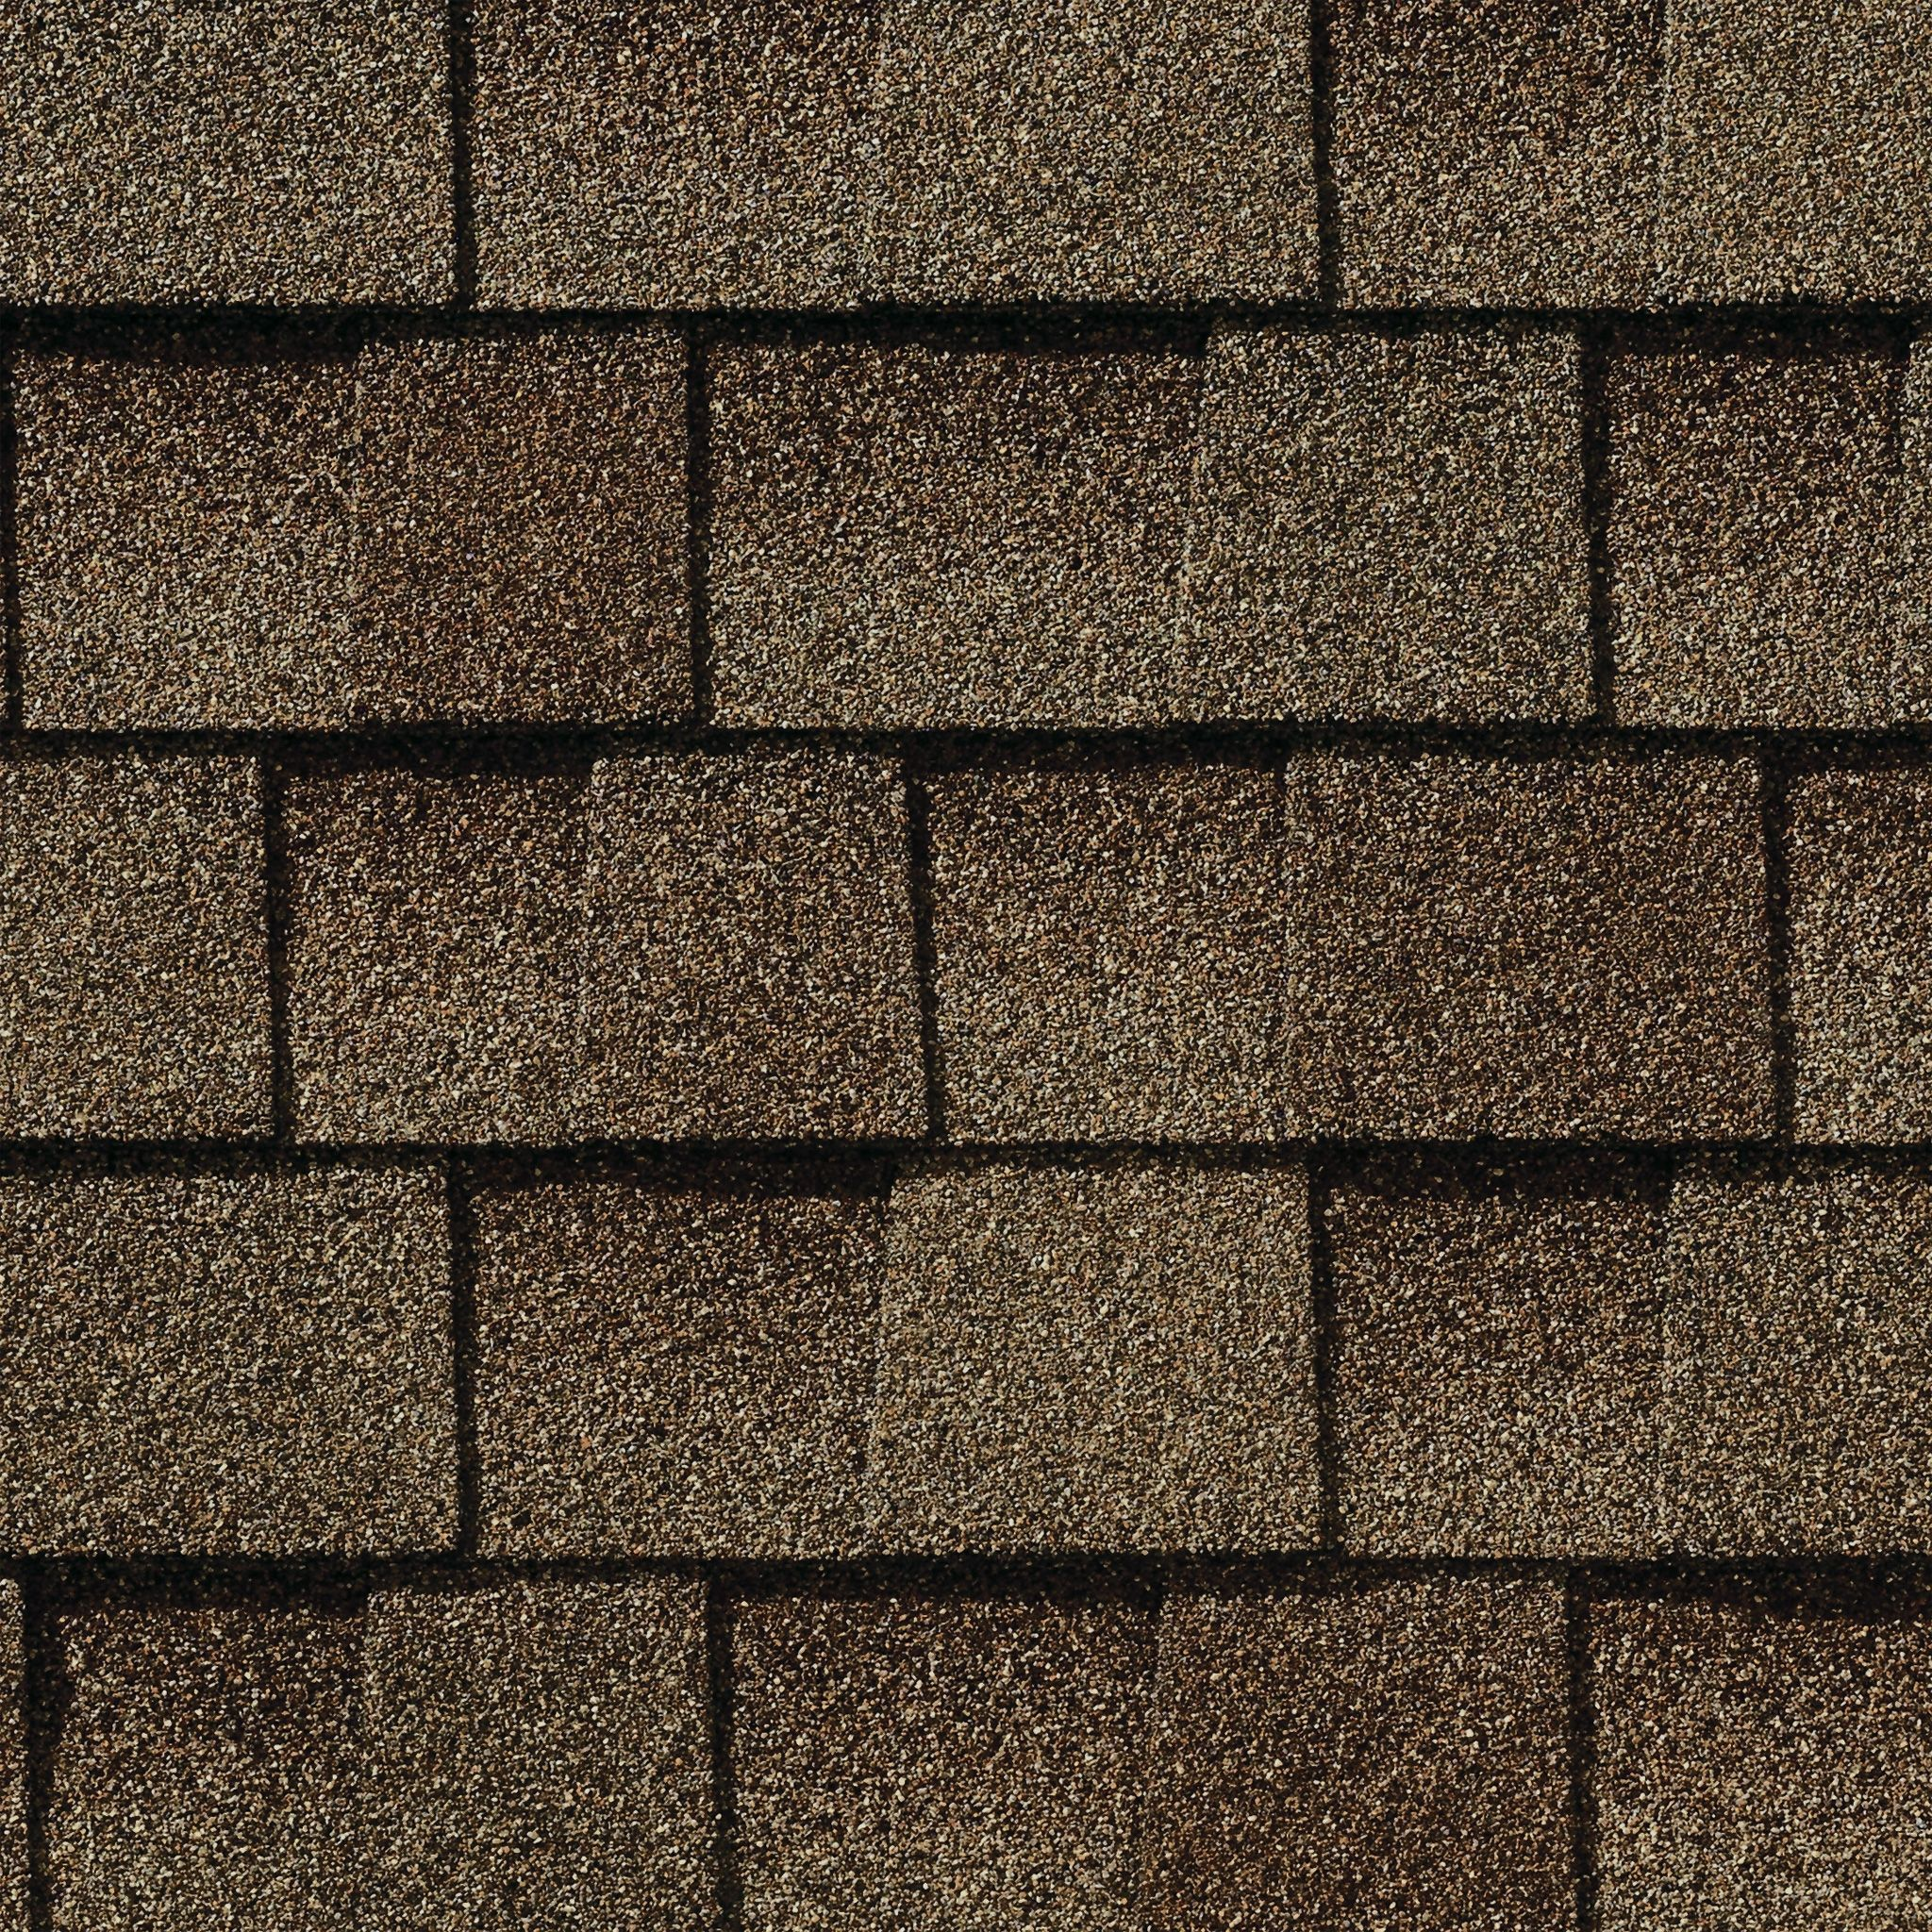 Gaf Timberline Natural Shadow Roofing Shingles Architectural Shingles Architectural Shingles Roof Timberline